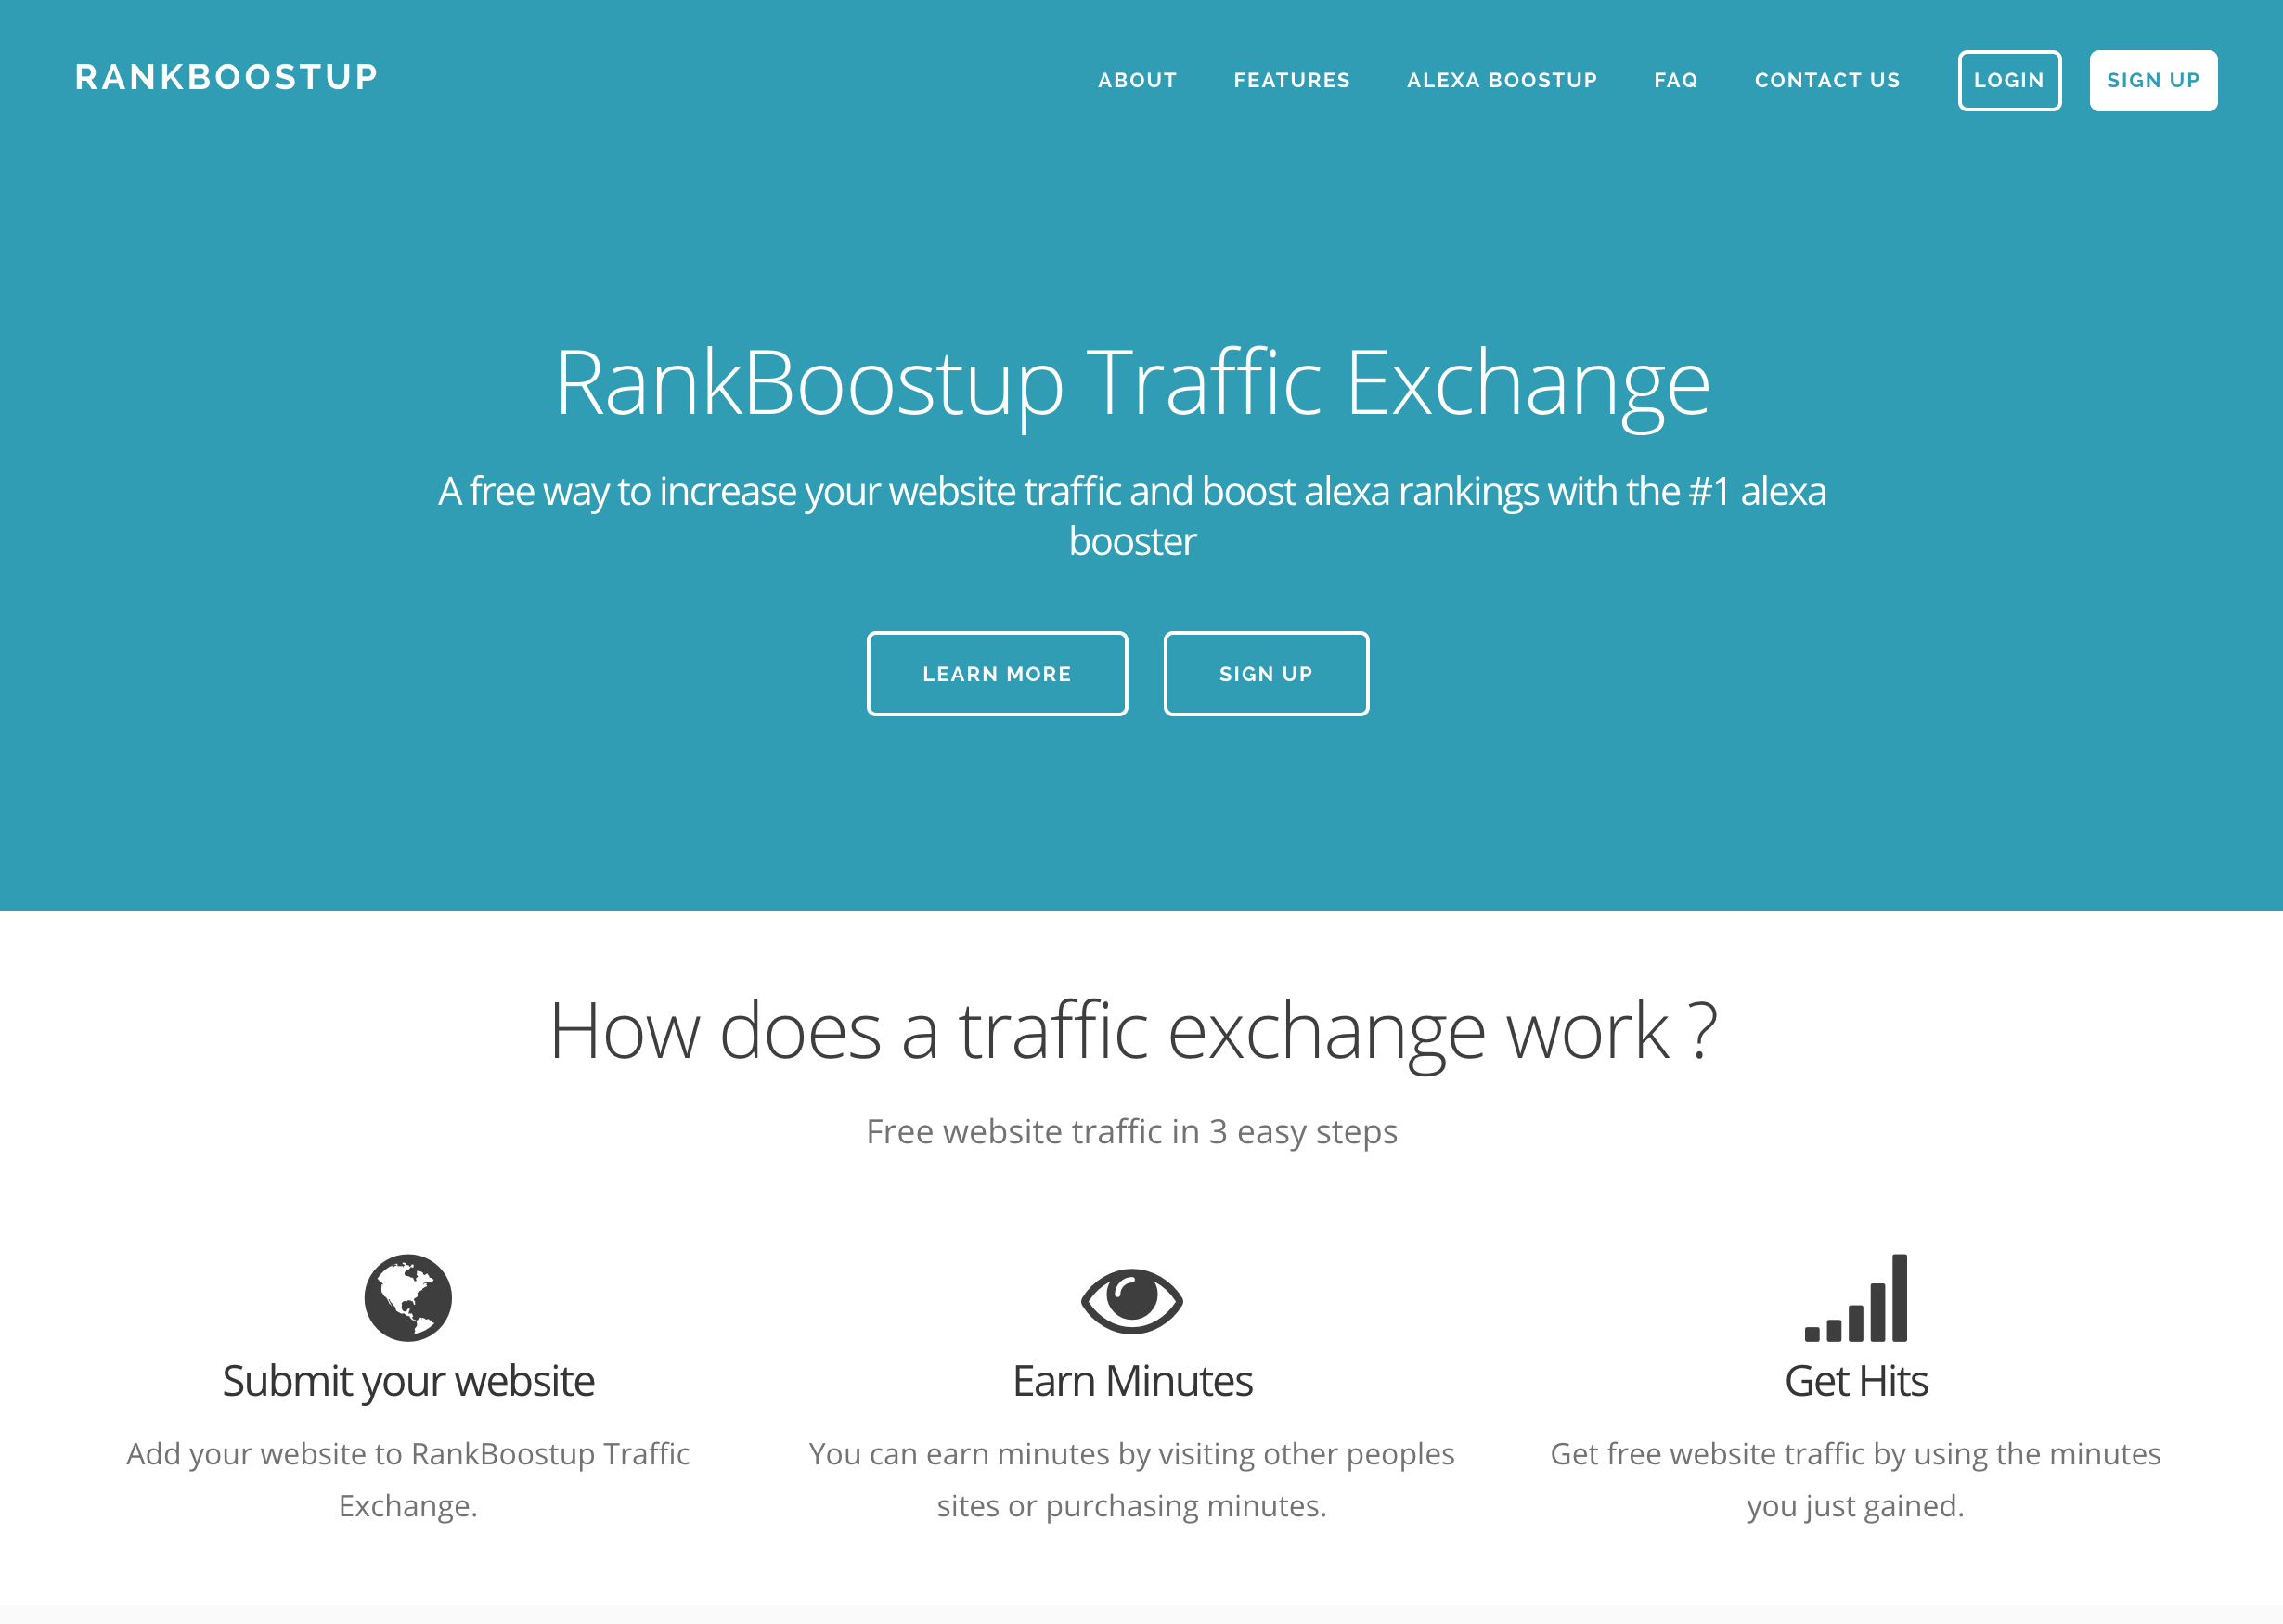 Rankboostup Traffic Exchange Service was created